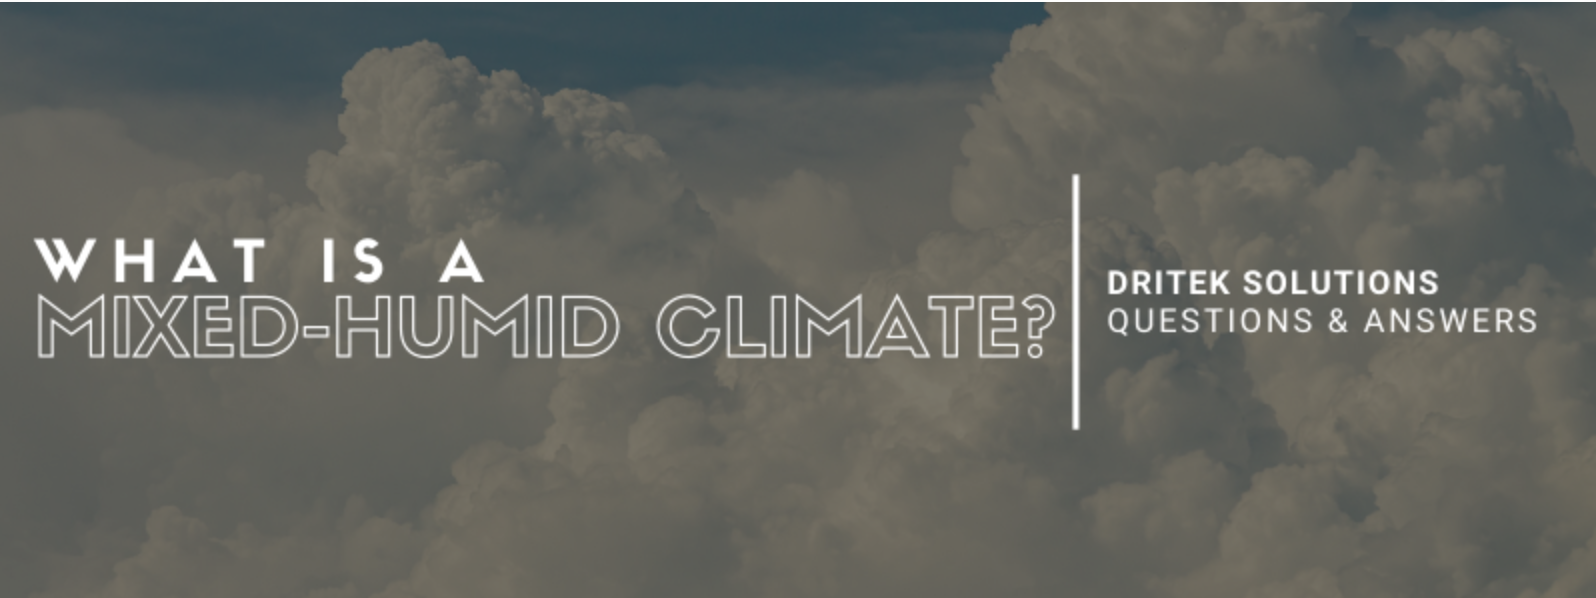 What is a Mixed-Humid Climate?